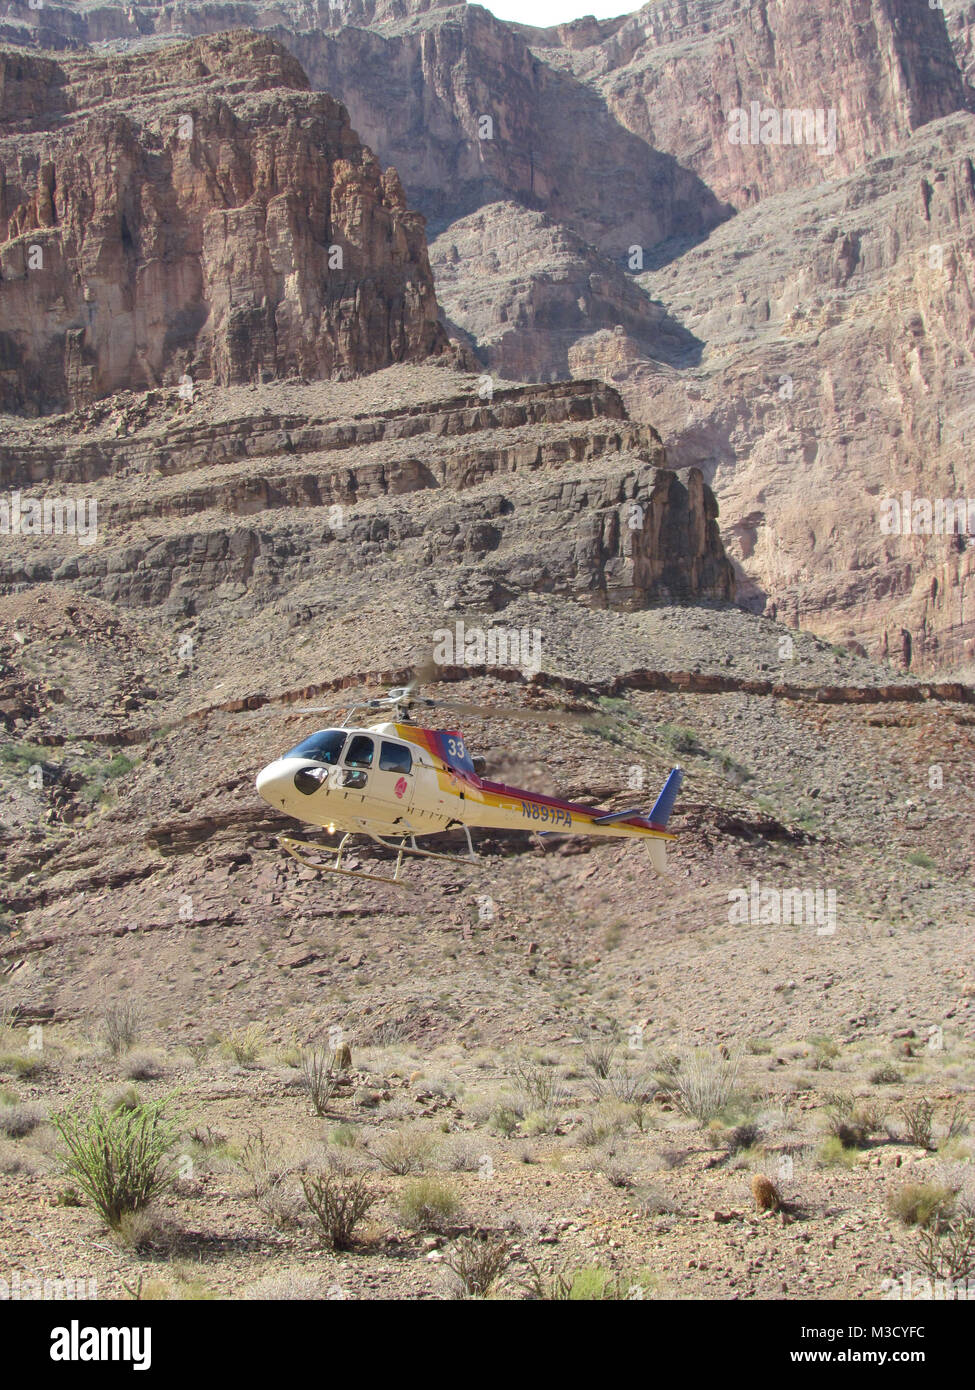 Pappilon helicopter tour at the Grand Canyon  Arizona, USA. - Stock Image